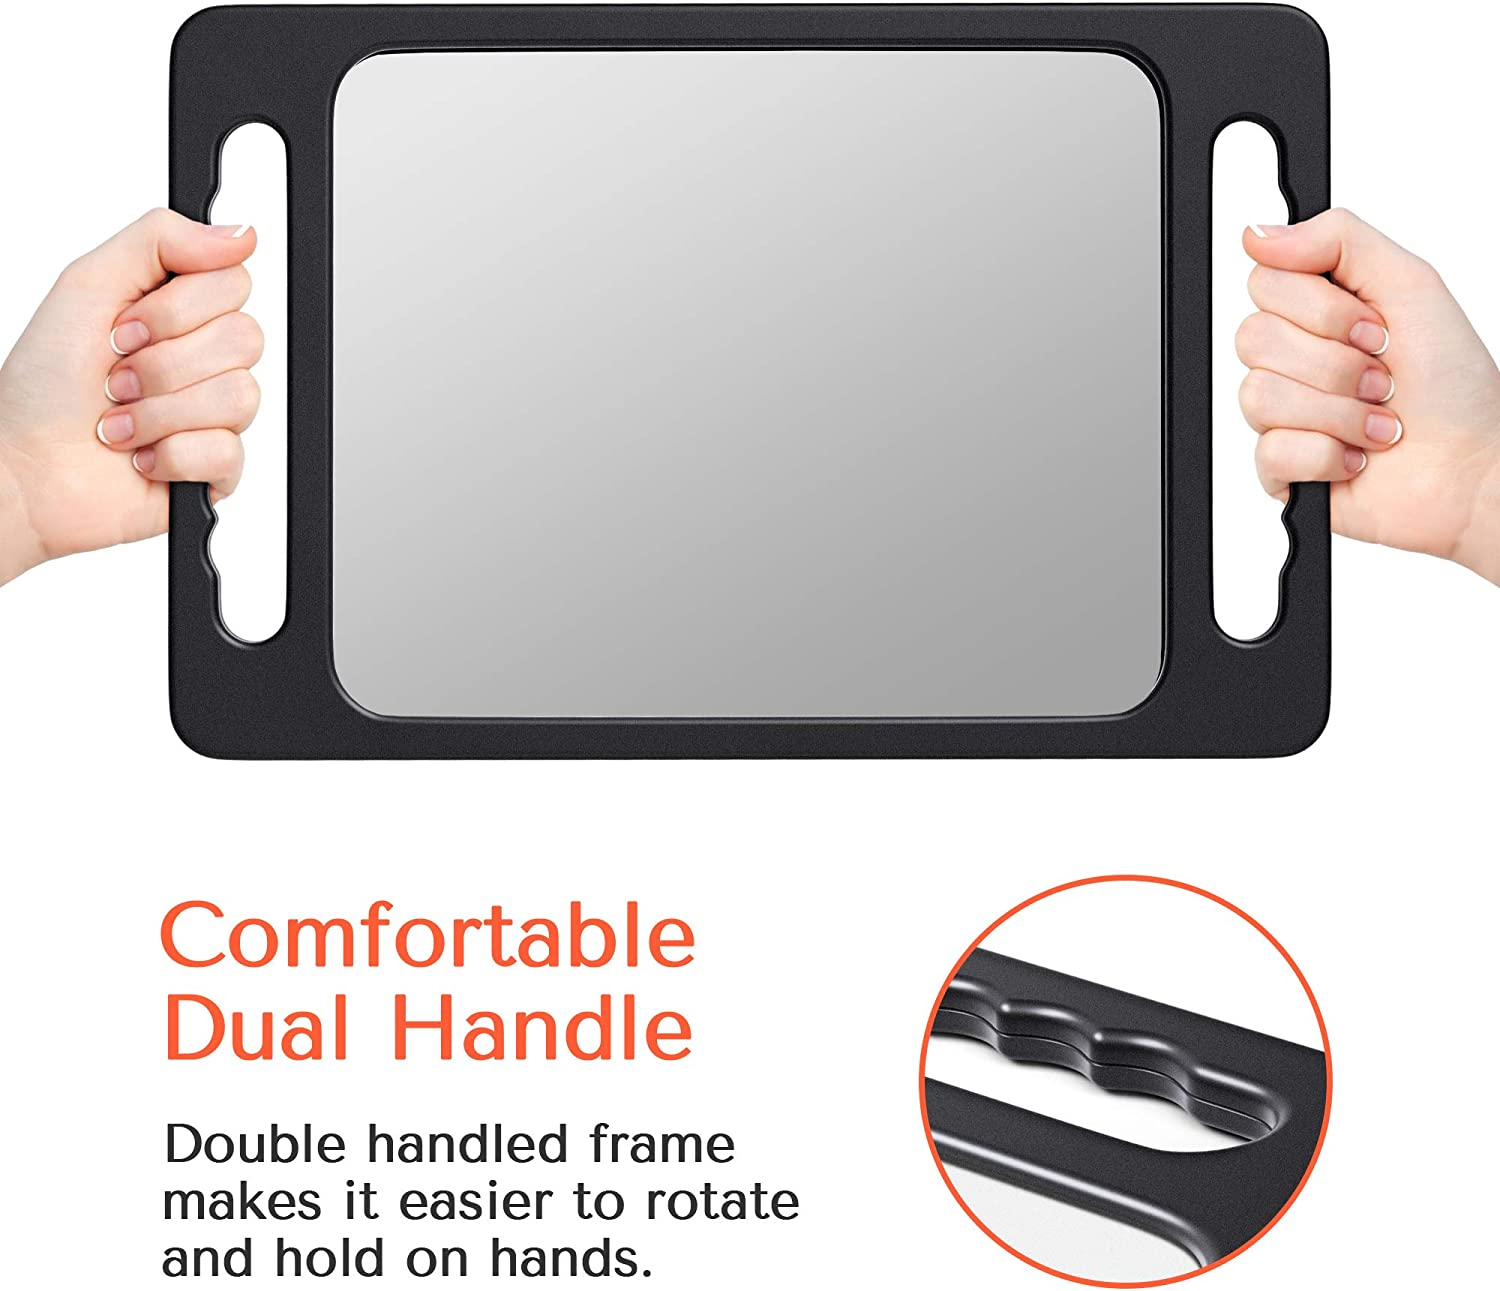 TASALON Unbreakable Hand Mirror with Double Handle - Large Handheld Barber Mirror for Hair and beauty Salon - Durable Hand Held Mirrors for barbershop - Lightweight Haircut Mirror with Double Handgrip: Furniture & Decor